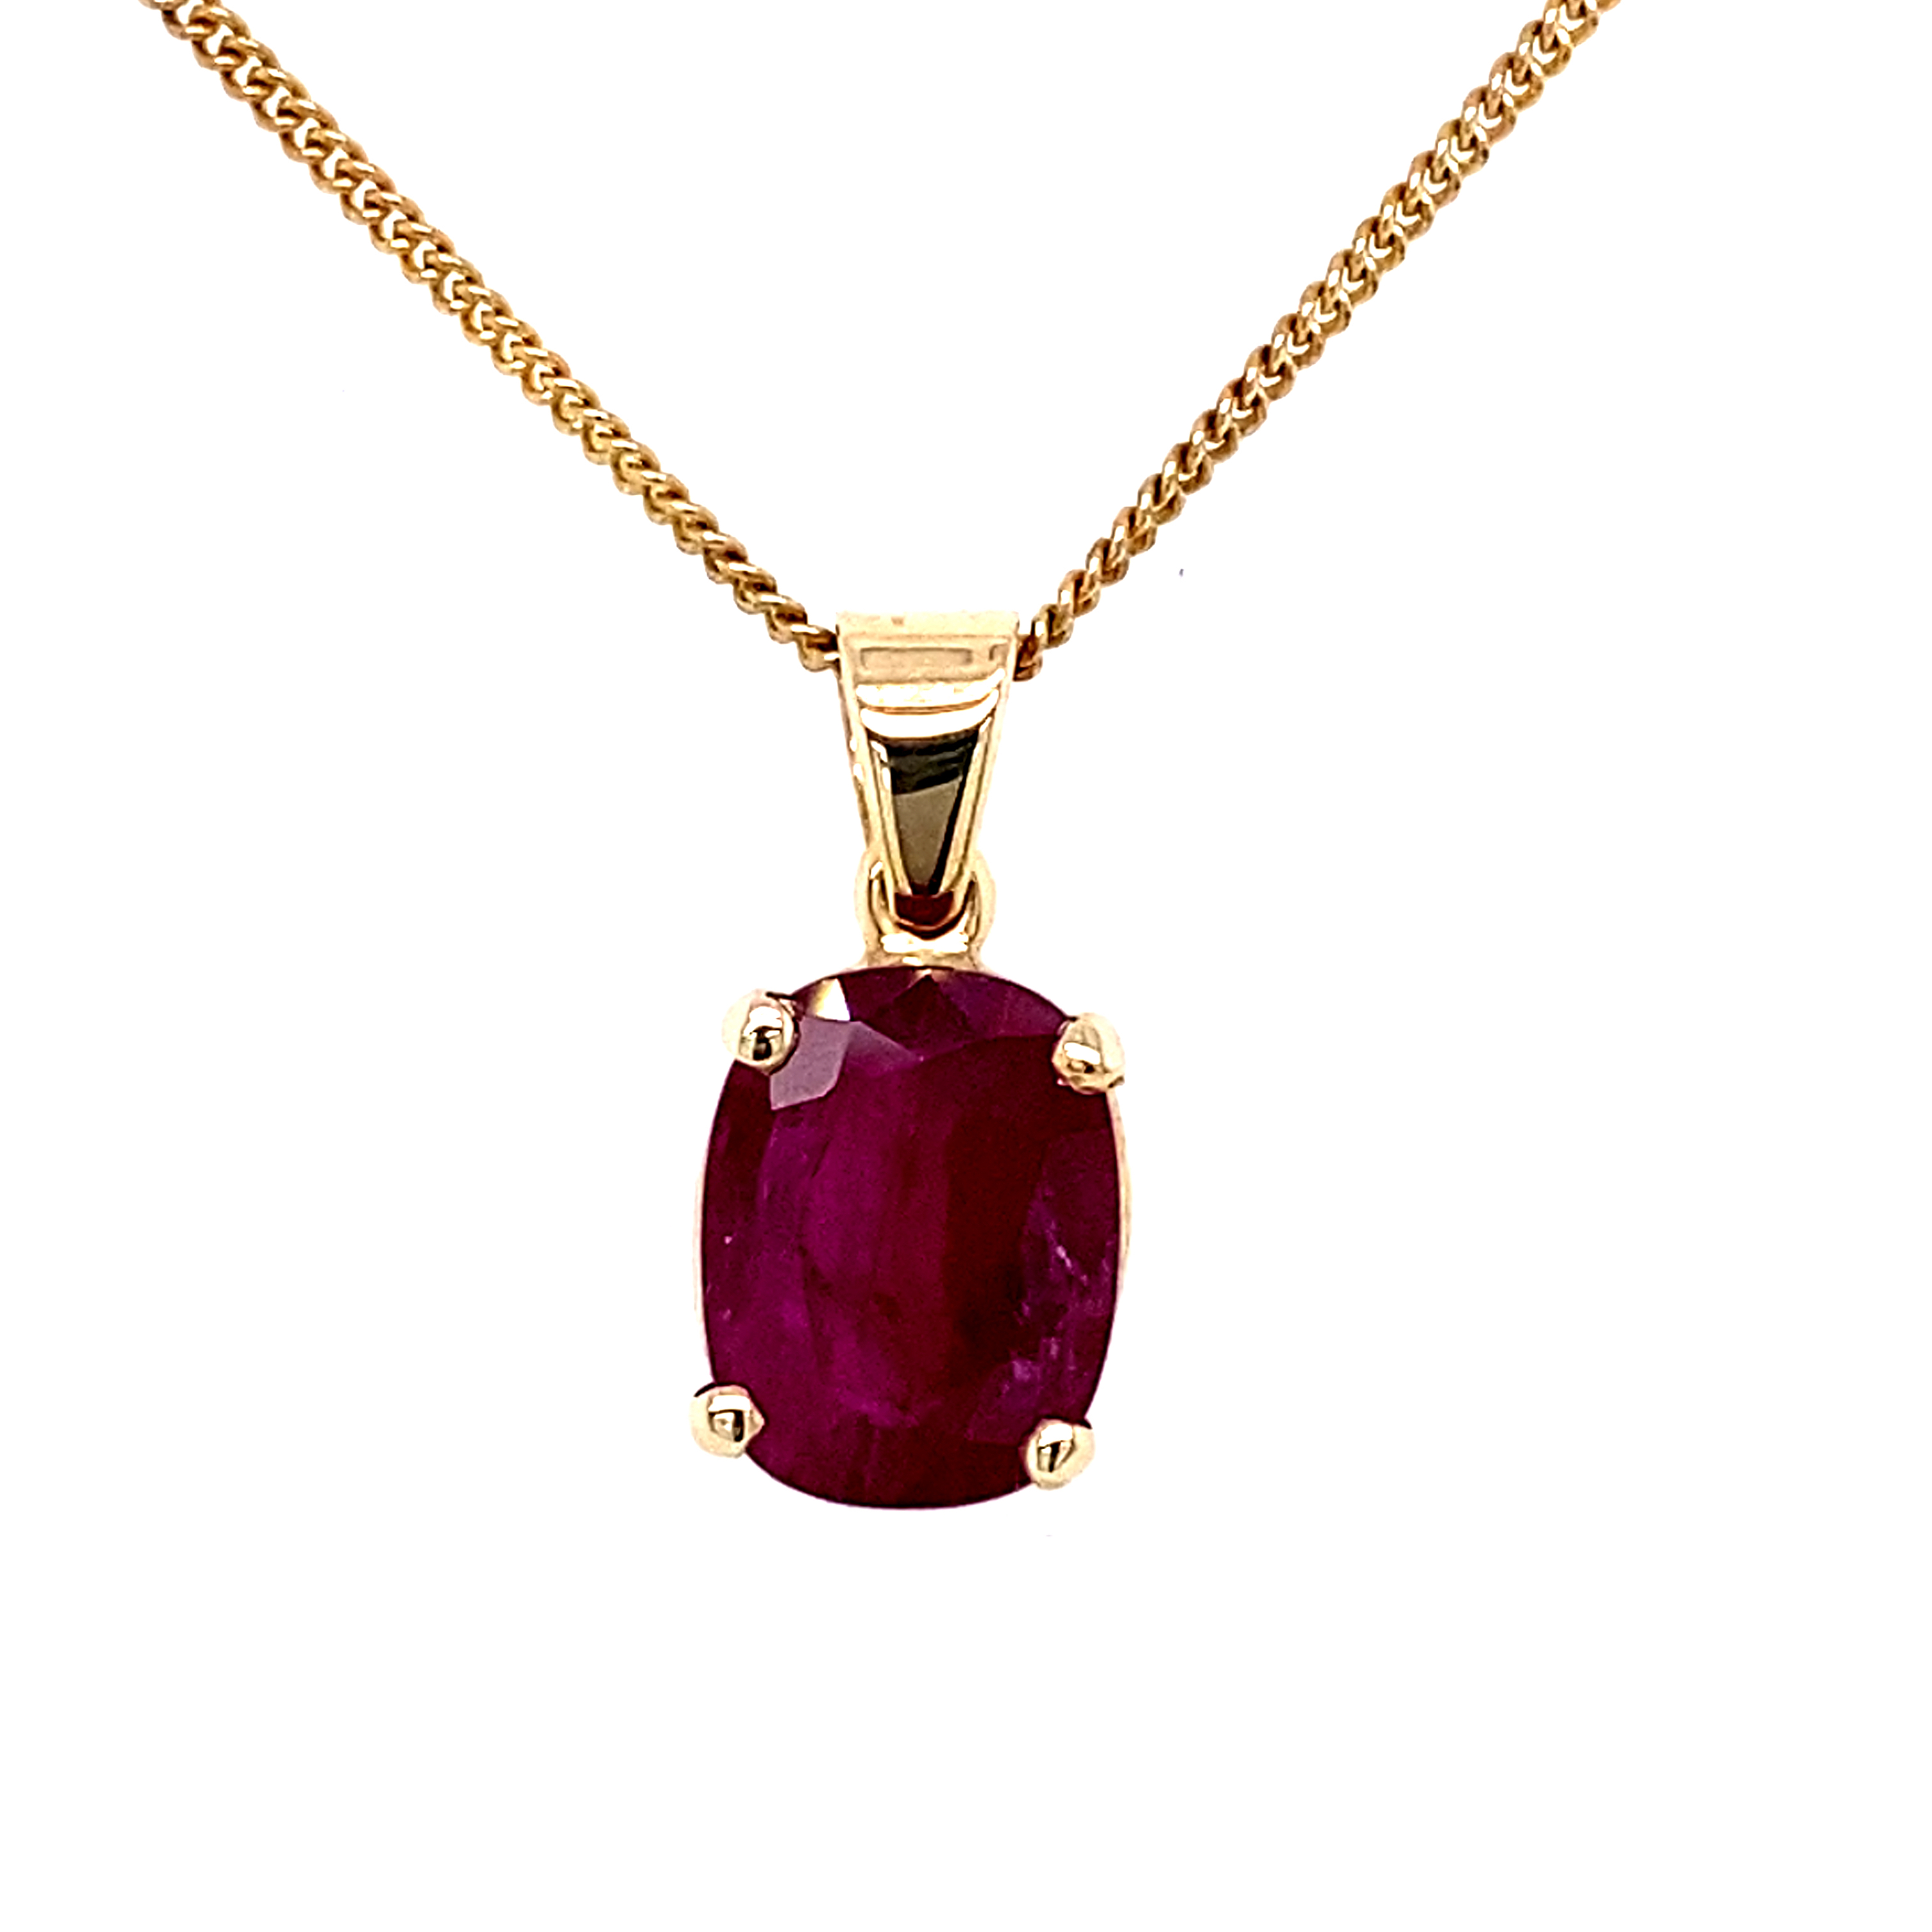 9 Carat Yellow Gold and Ruby Pendant